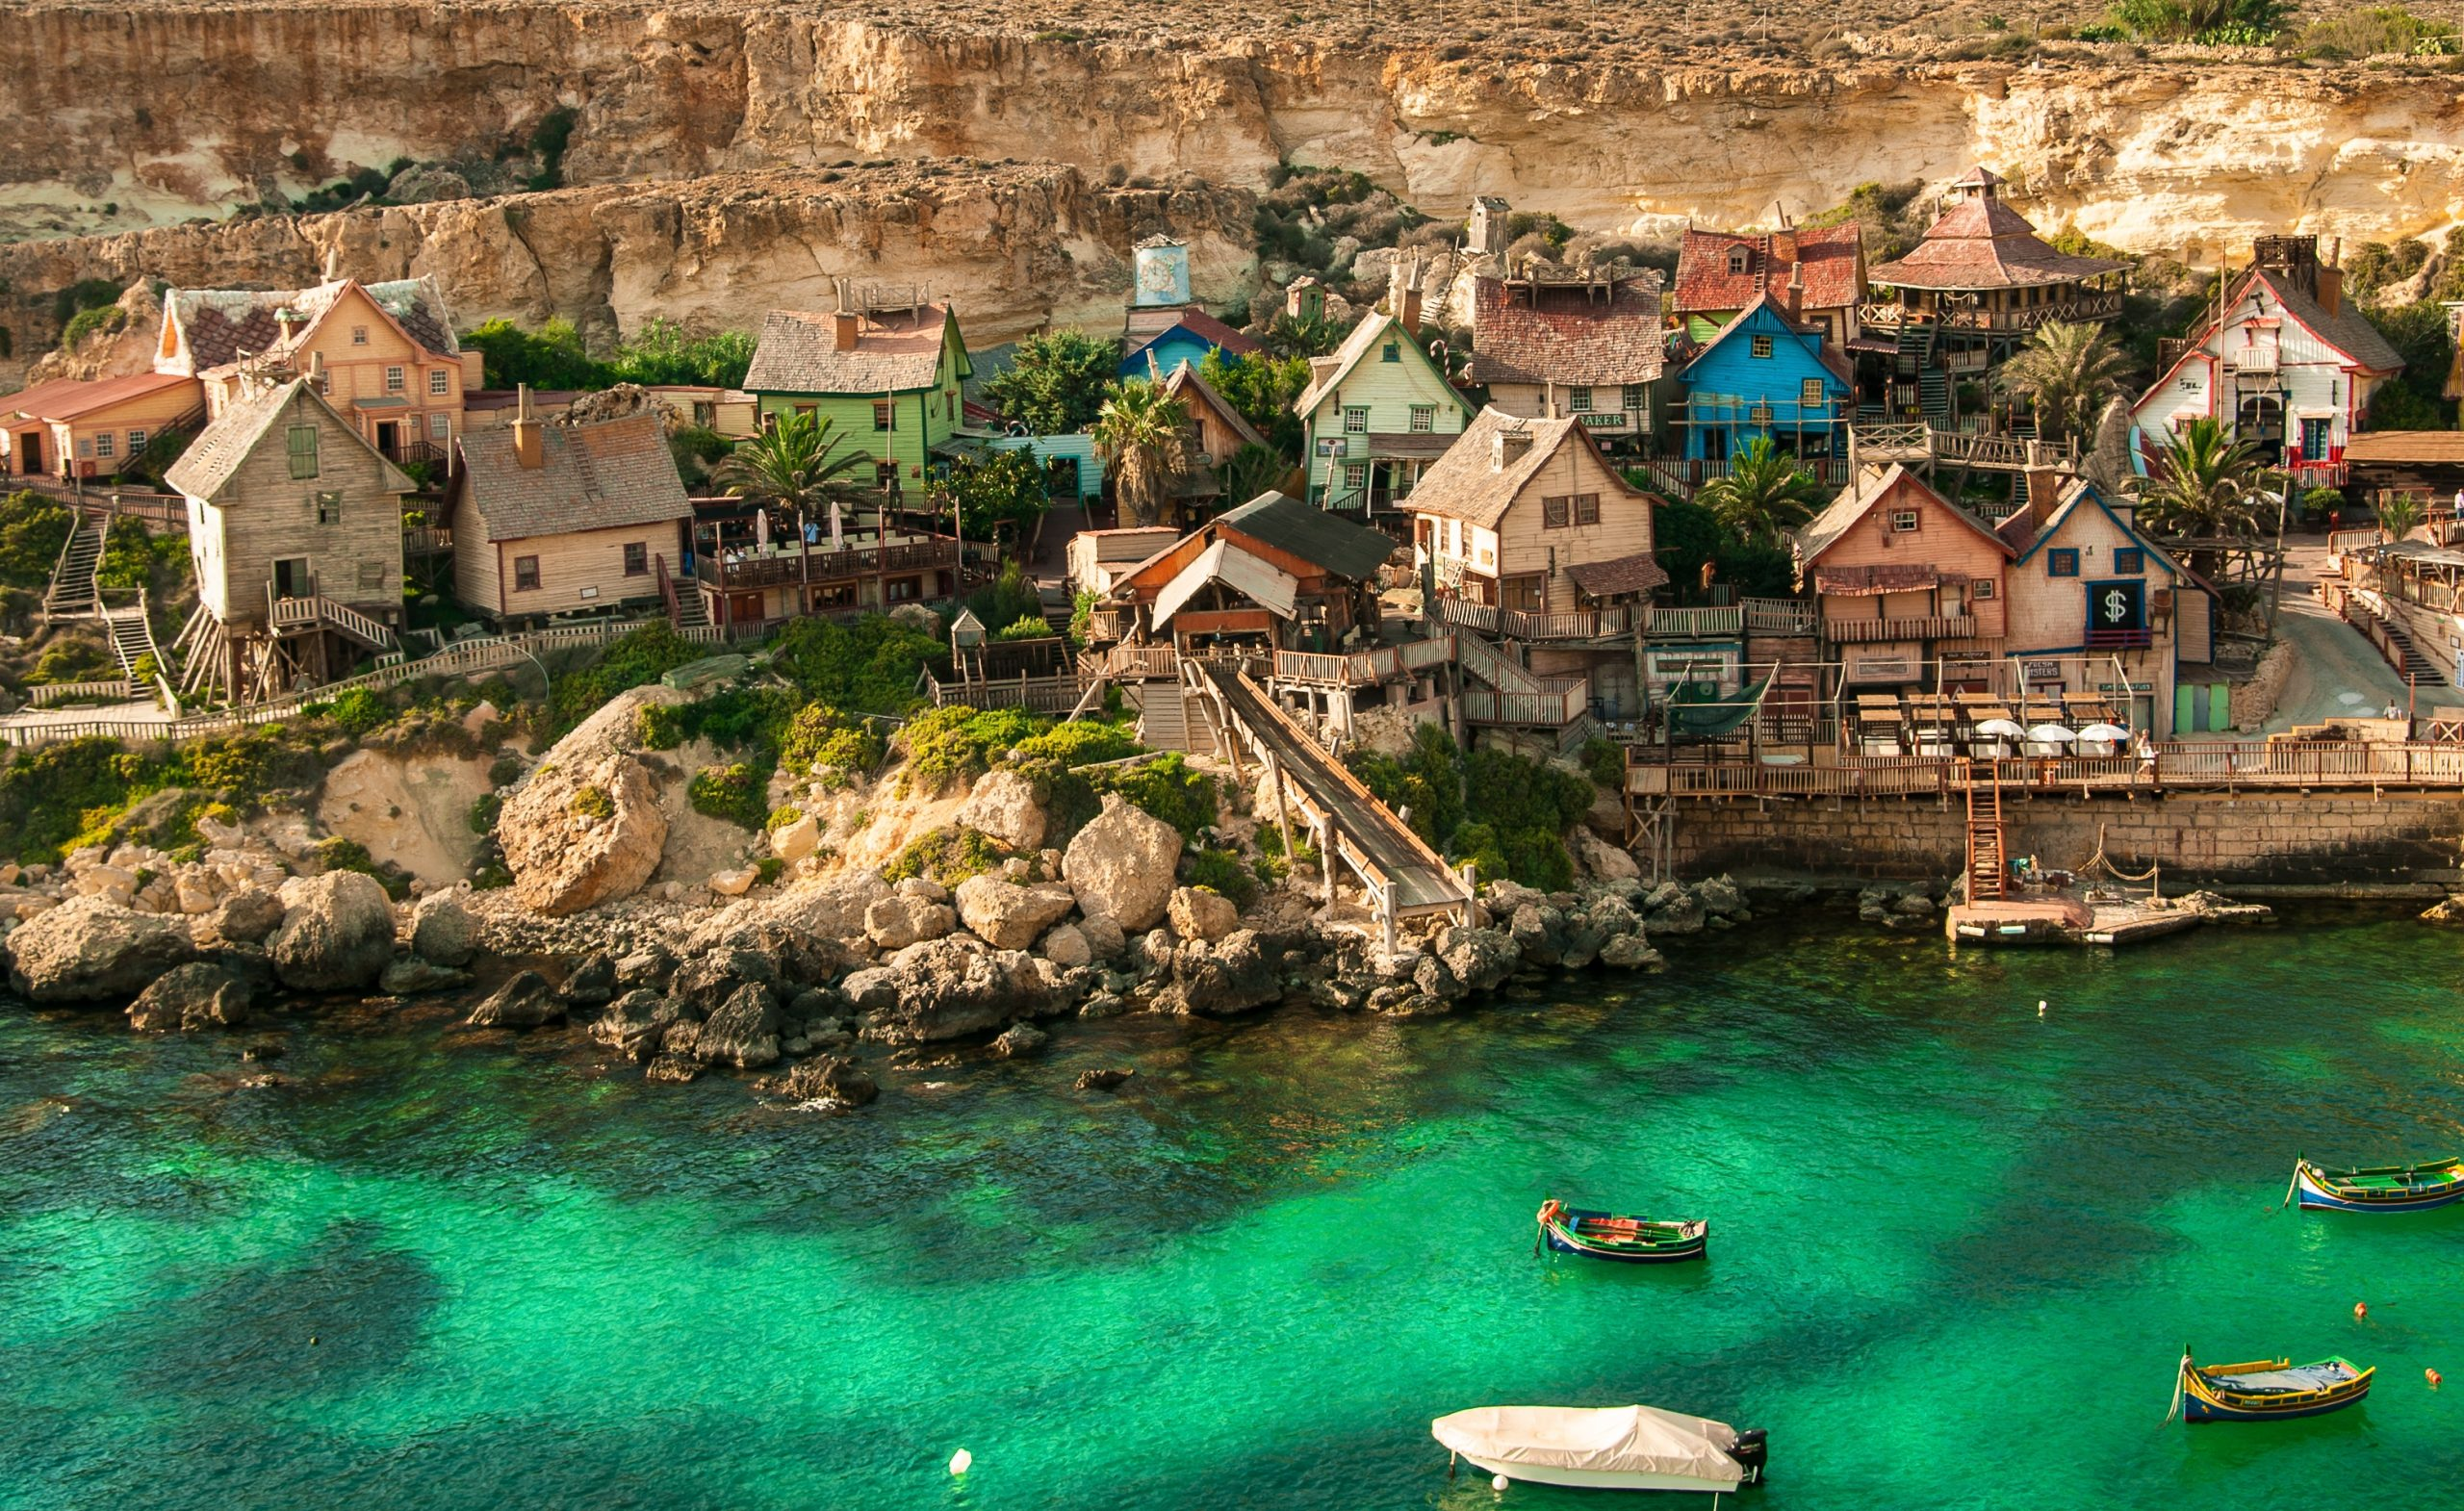 popeye village, malta, architecture